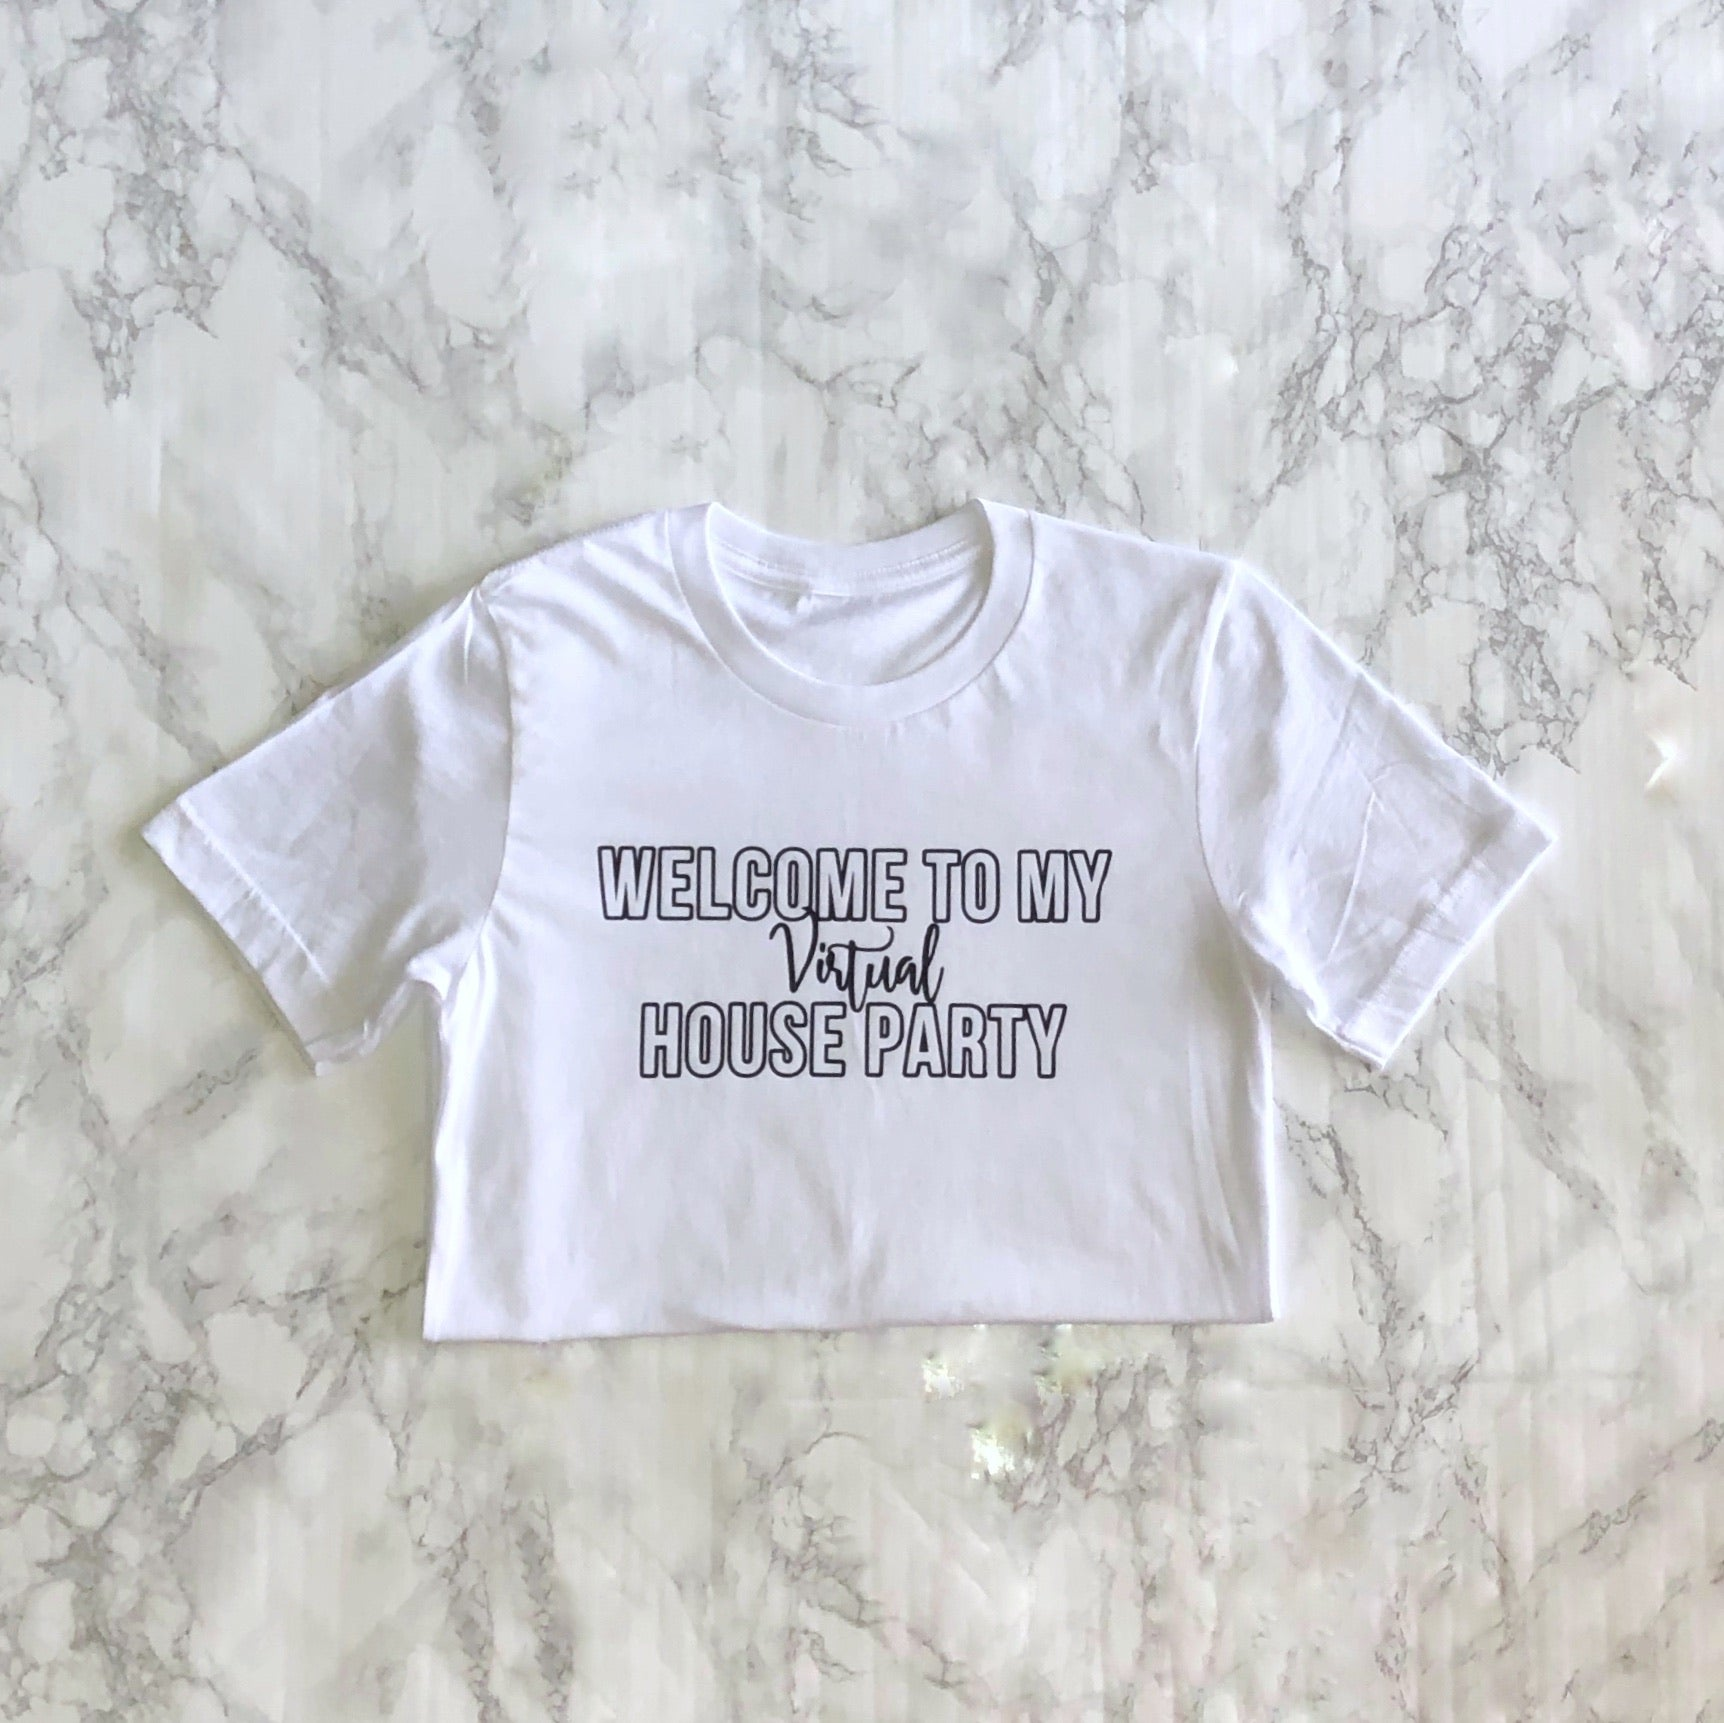 Welcome to my virtual house party T-shirt